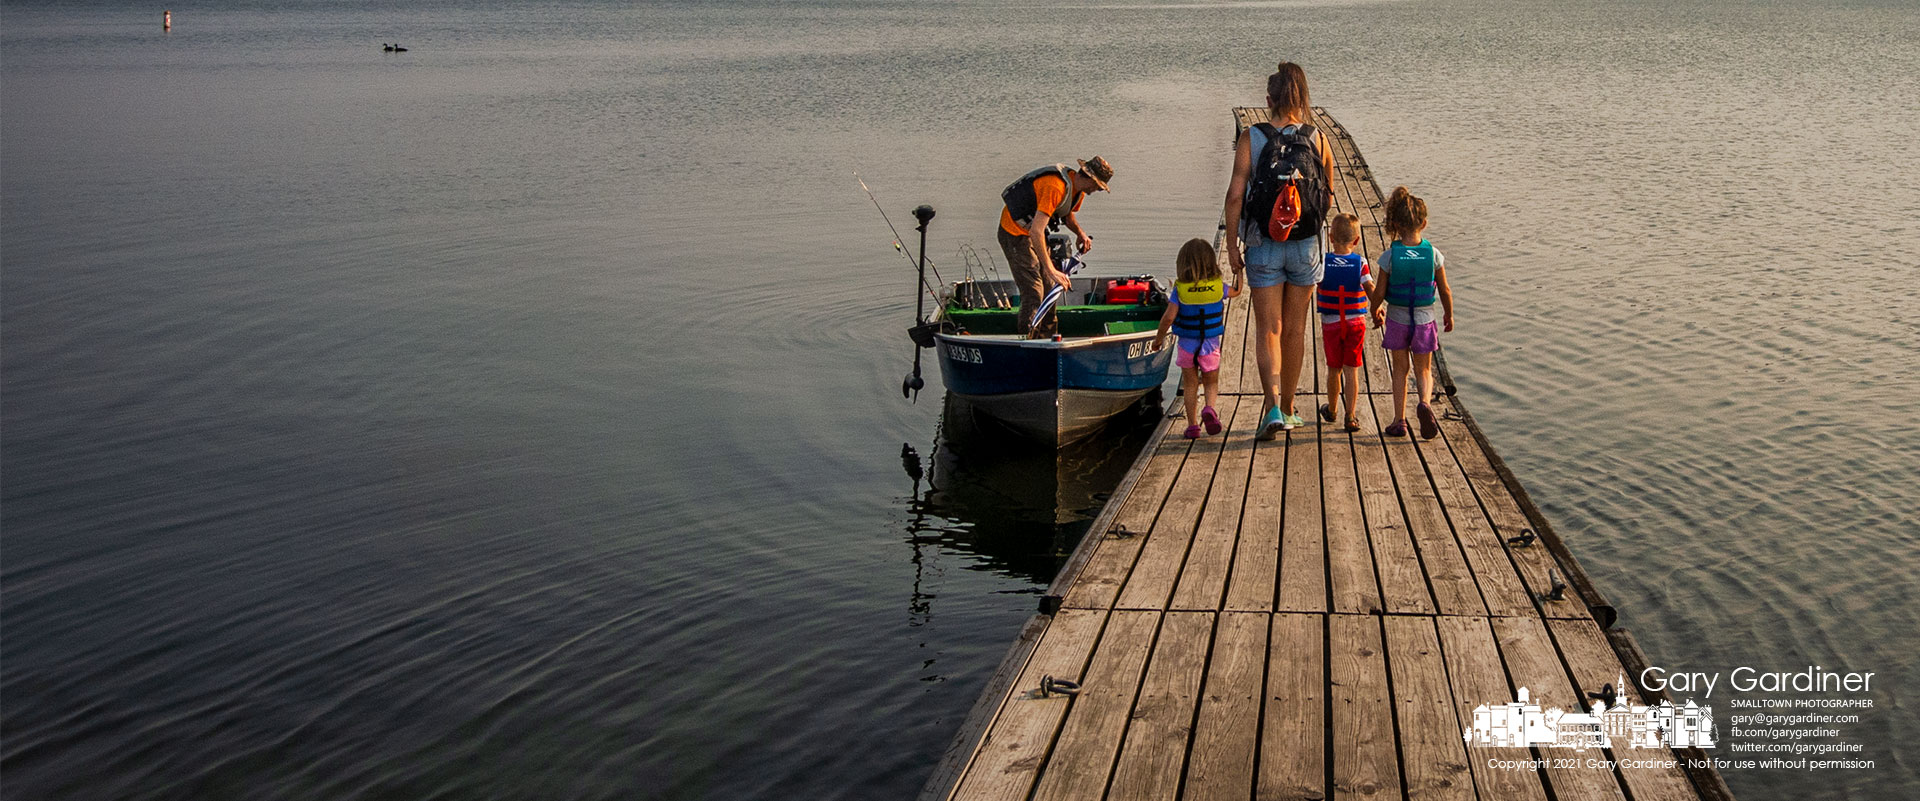 Dad readies the boat as Mom, wearing a backpack filled with snacks, escorts their three children along the Walnut Street boat ramp dock for a day of fishing on Hoover Reservoir. My Final Photo for Sept.13, 2021.